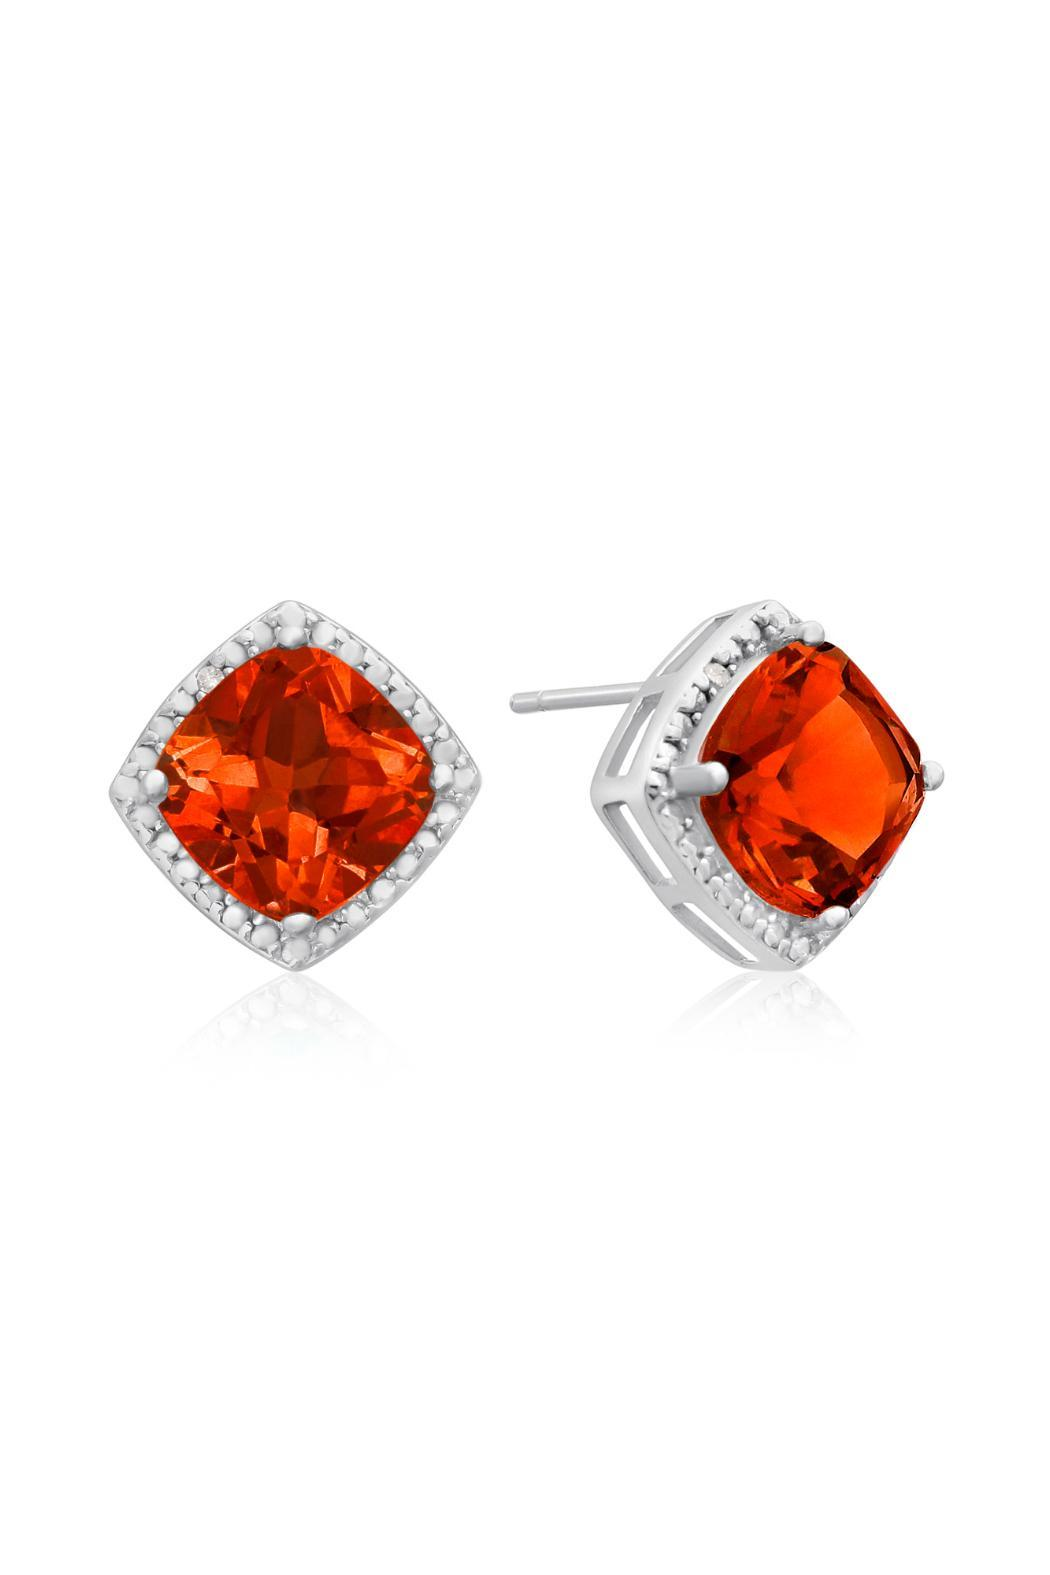 silver shape on carat watches earrings jewelry sapphire in sterling overstock orders created over tgw product free com padparadscha leverback emerald shipping orange